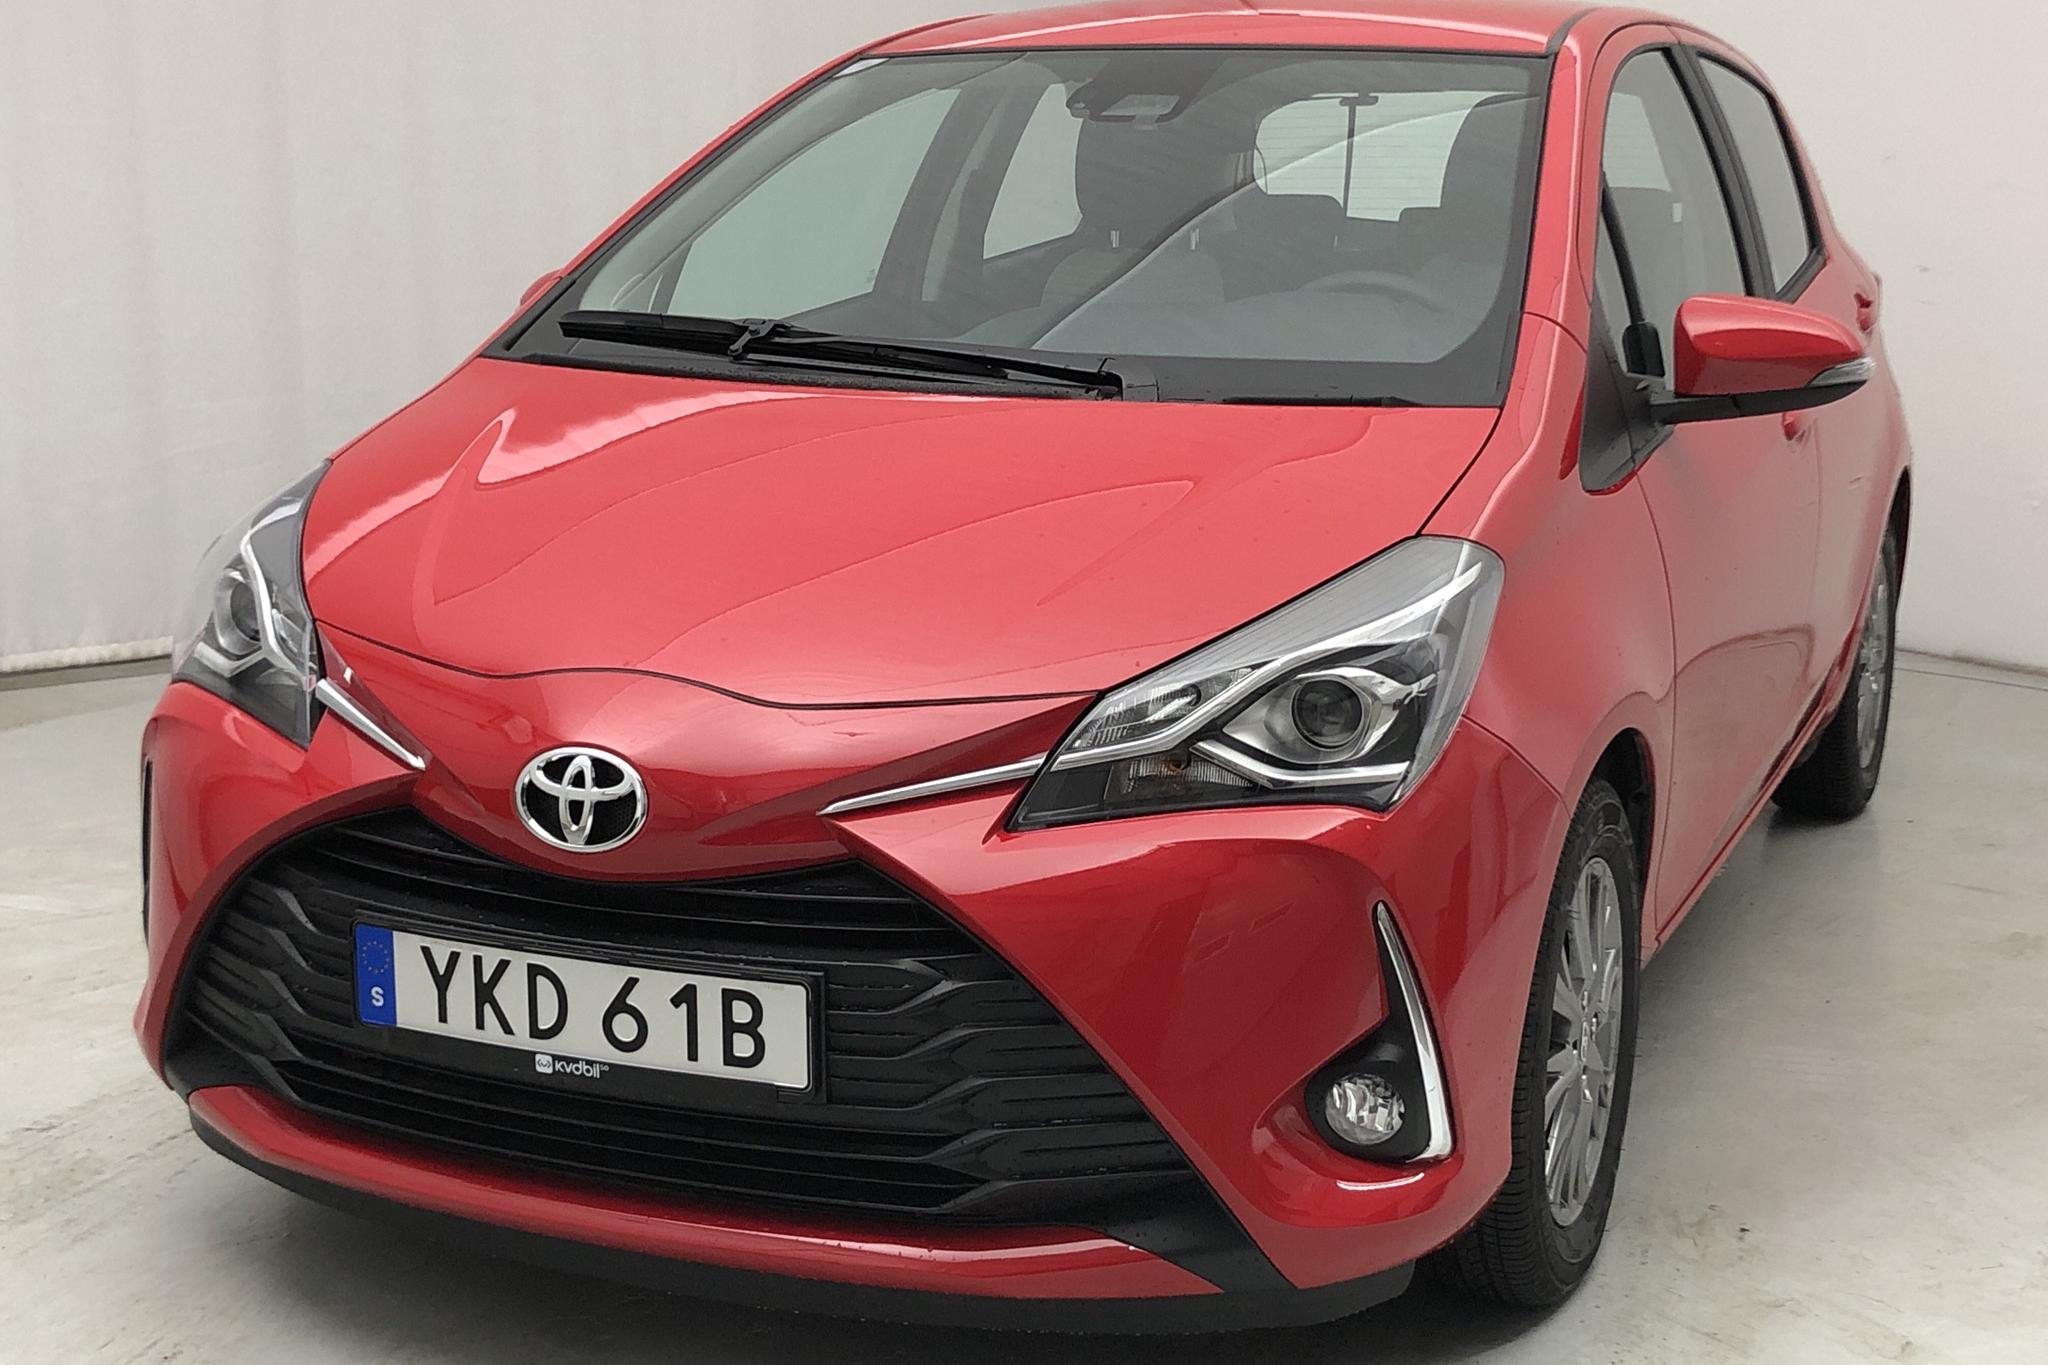 Toyota Yaris 1.5 5dr (111hk) - 700 km - Automatic - red - 2020